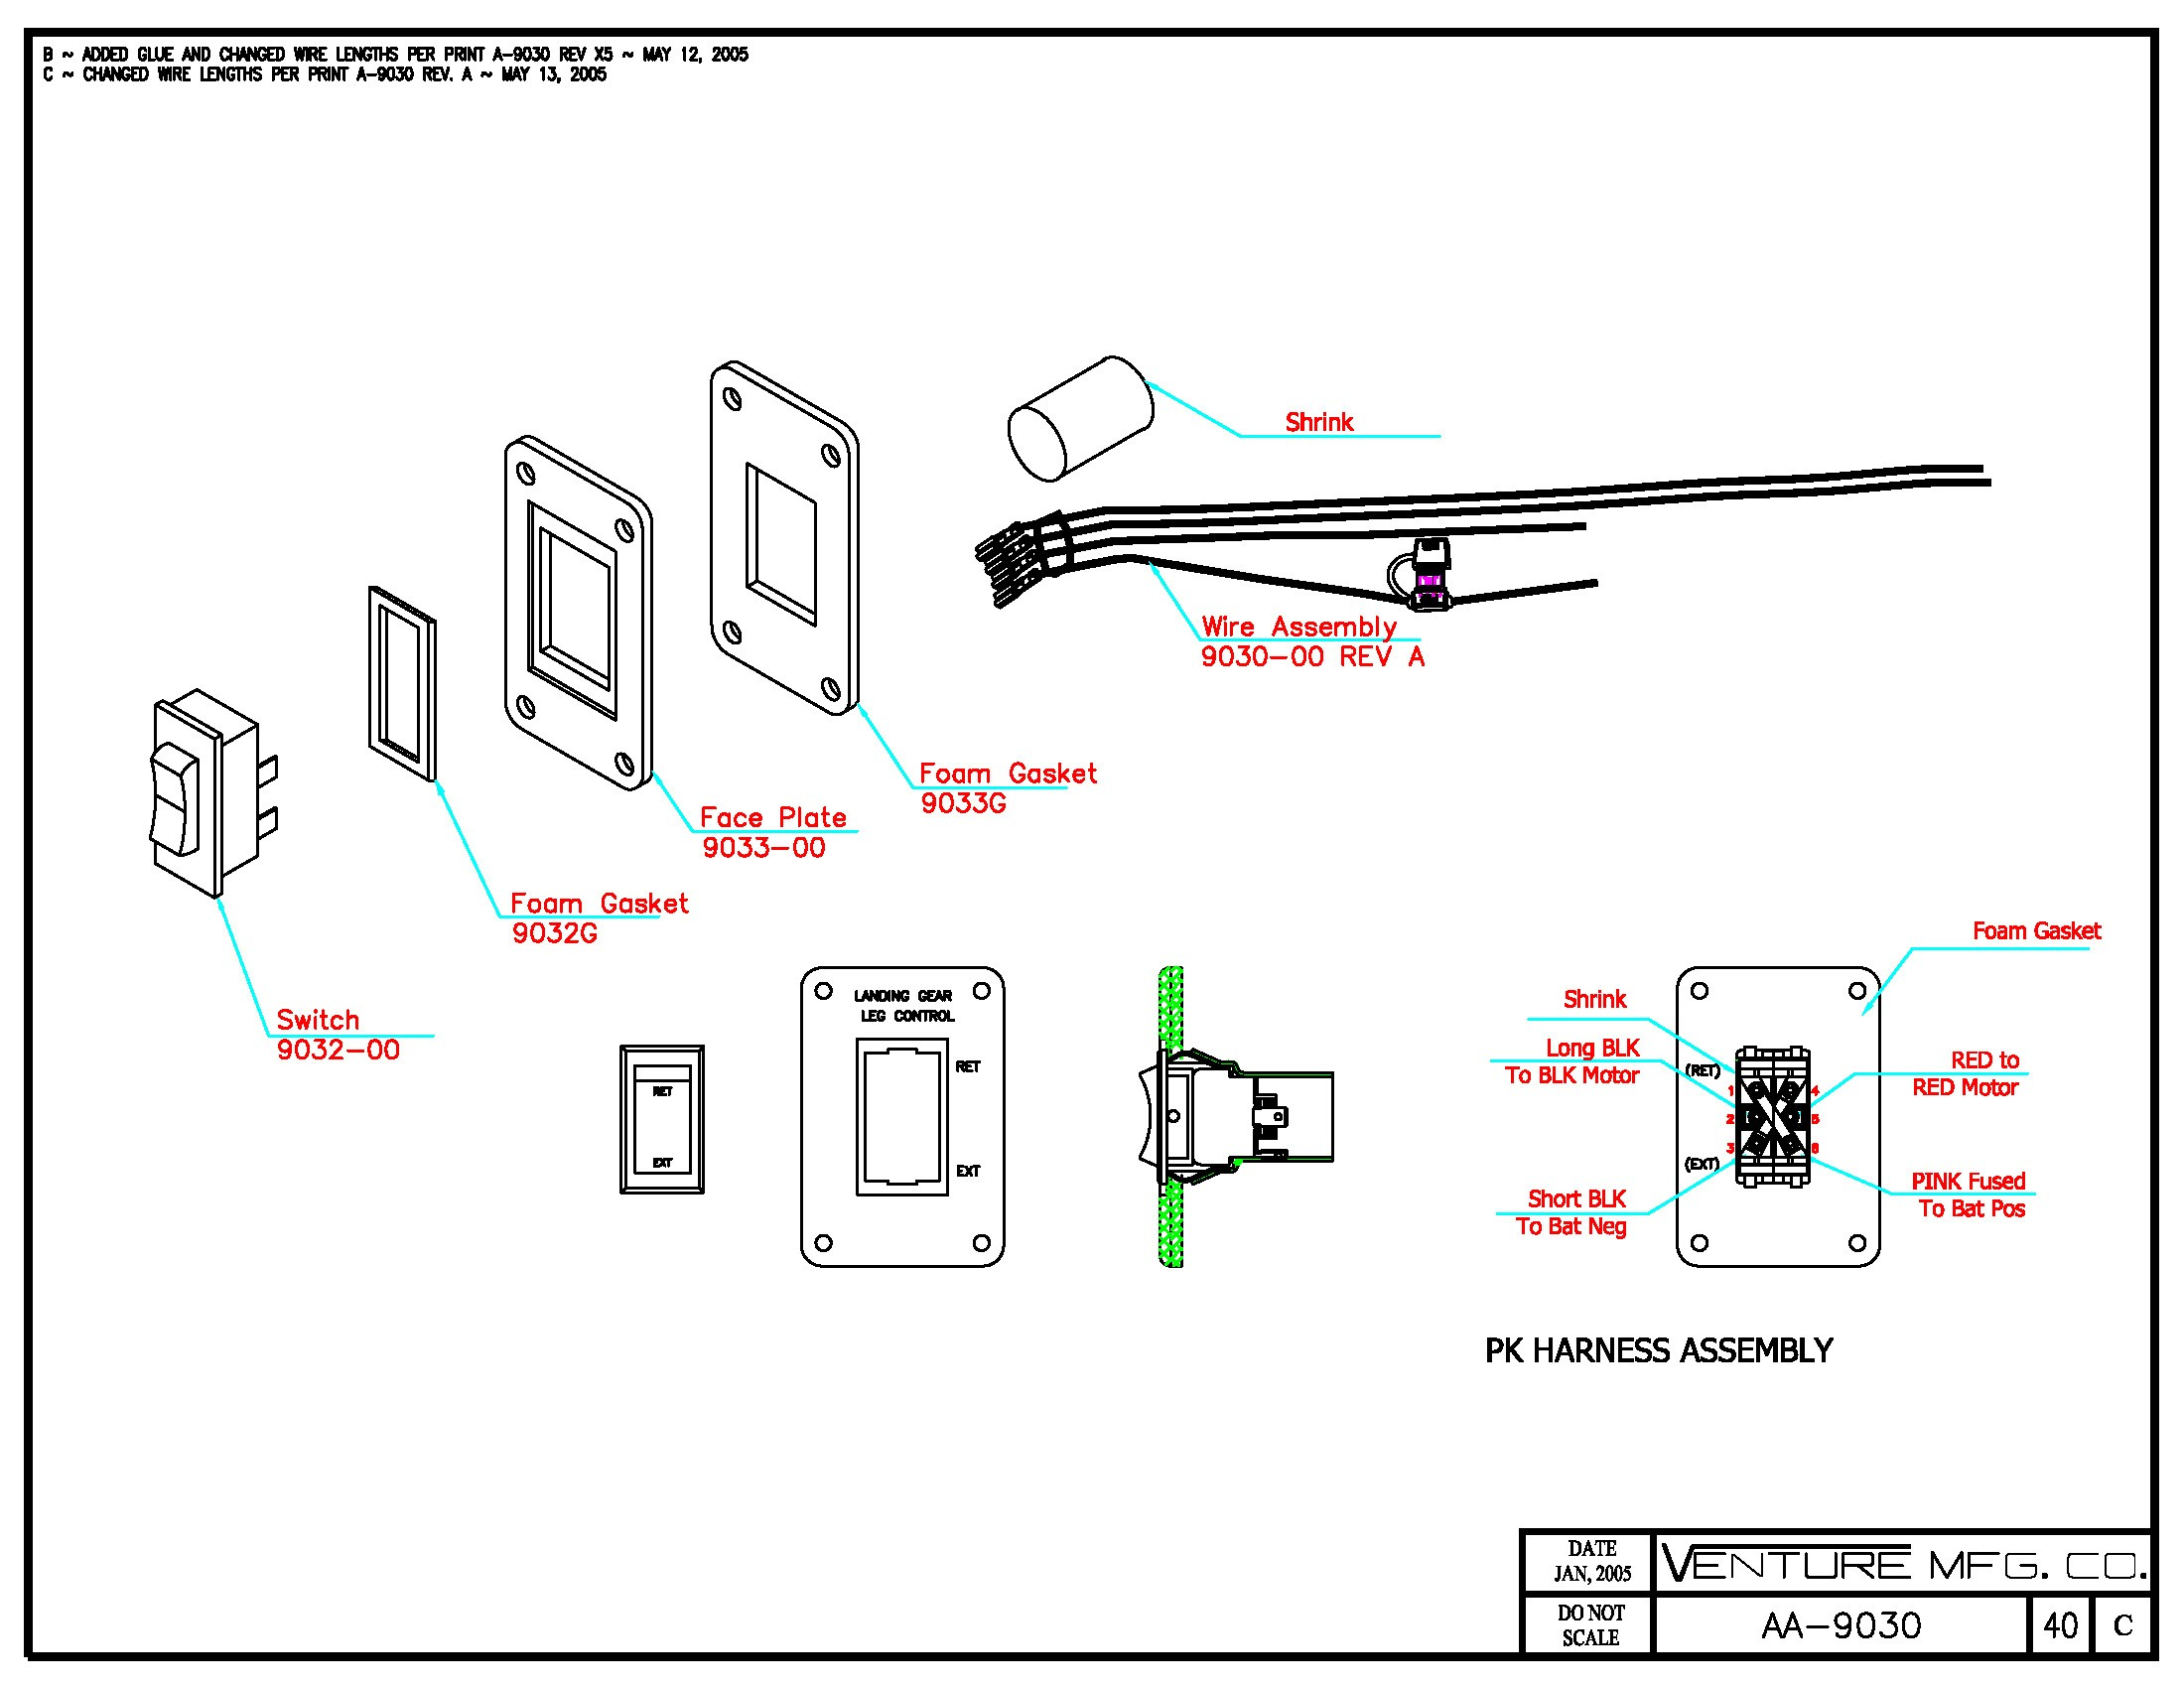 Camper Trailer Lights Wiring Diagram - Wiring Solutions on car hauler wiring diagram, fifth wheel trailer dimensions, motorcycle wiring diagram, rv wiring diagram, 7 plug wiring diagram, toy hauler wiring diagram, fifth wheel electrical diagram, fifth wheel trailer repair, fifth wheel trailer jack, boat wiring diagram, fifth wheel wiring harness, flatbed wiring diagram, fifth wheel truck, snowmobile wiring diagram, fifth wheel diagrams for semis, van wiring diagram, fifth wheel trailer frame, ultra wiring diagram, fifth wheel trailer door, fifth wheel trailer installation,